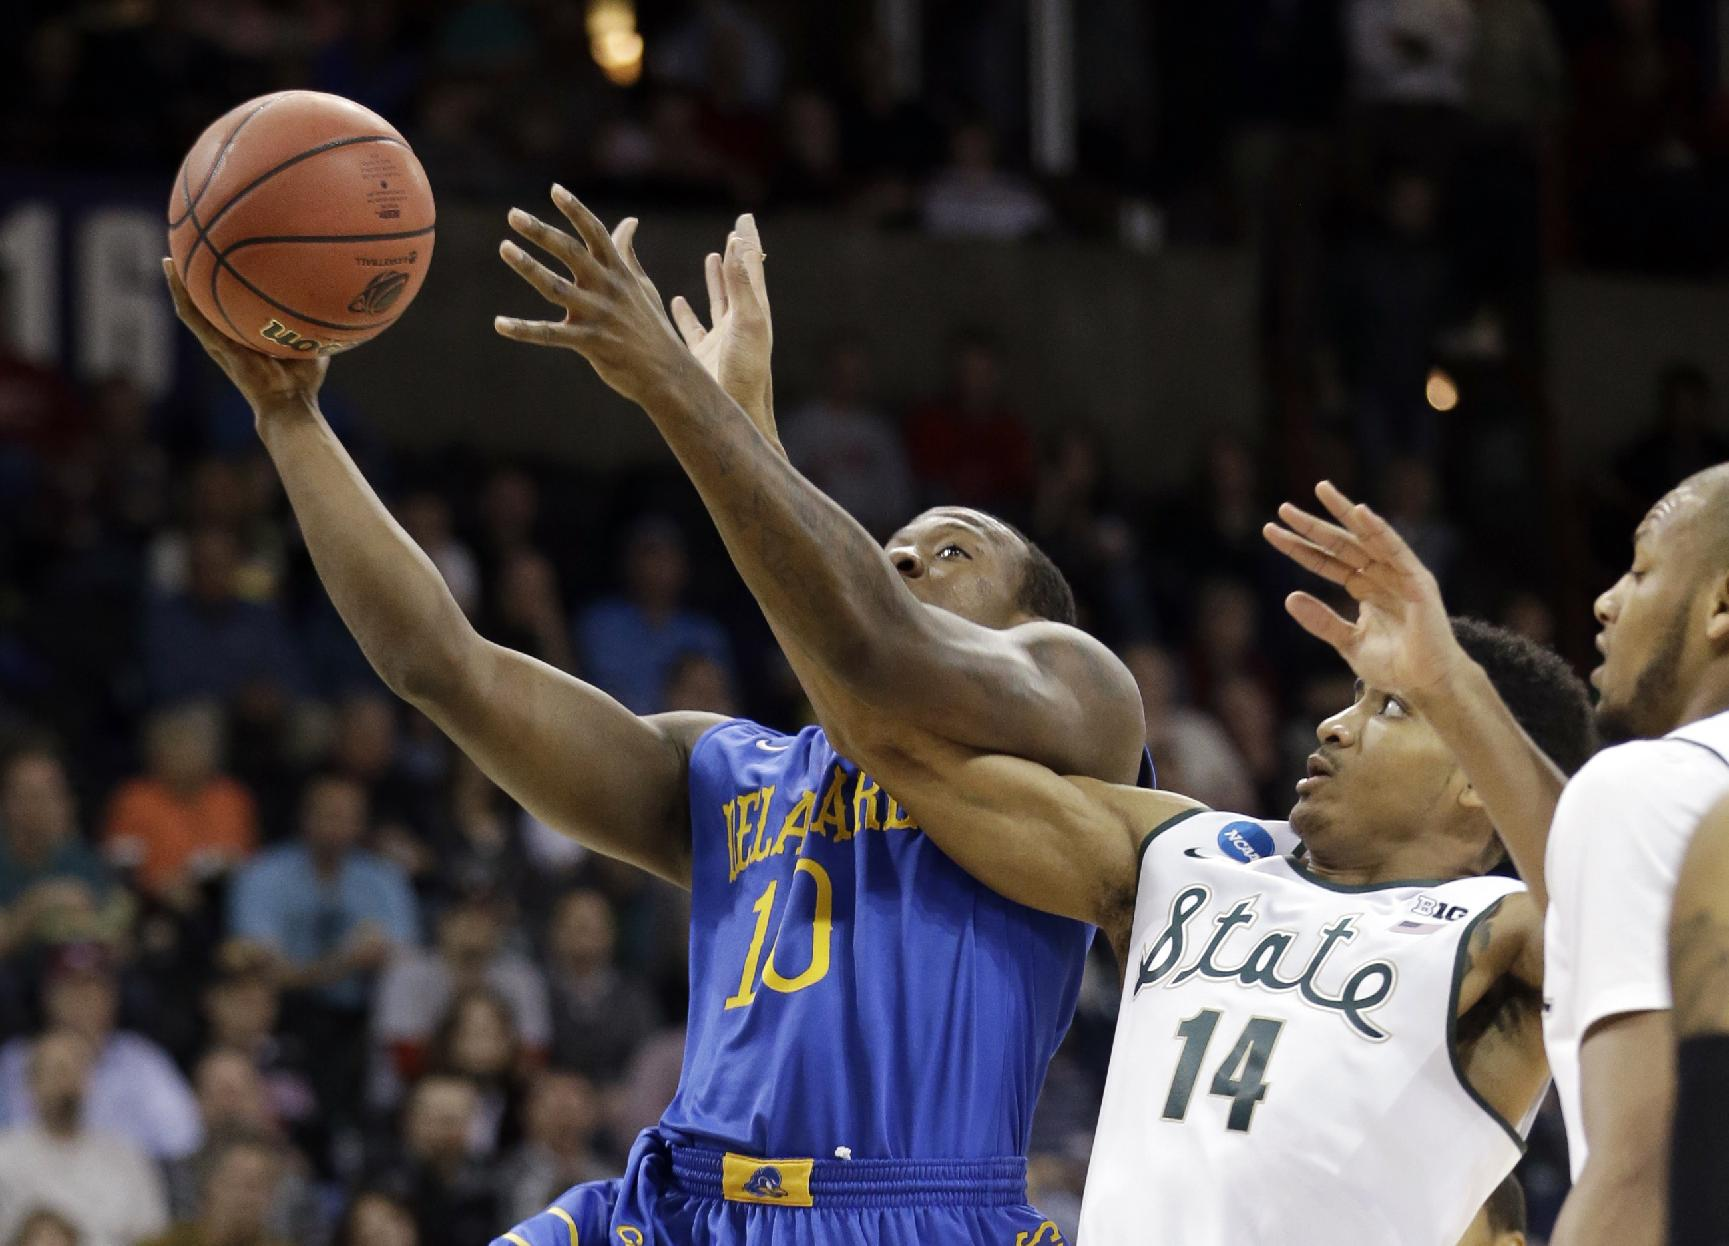 Michigan State's Gary Harris (14) tangles with Delaware's Devon Saddler  during the first half in the second round of the NCAA college basketball tournament in Spokane, Wash., Thursday, March 20, 2014